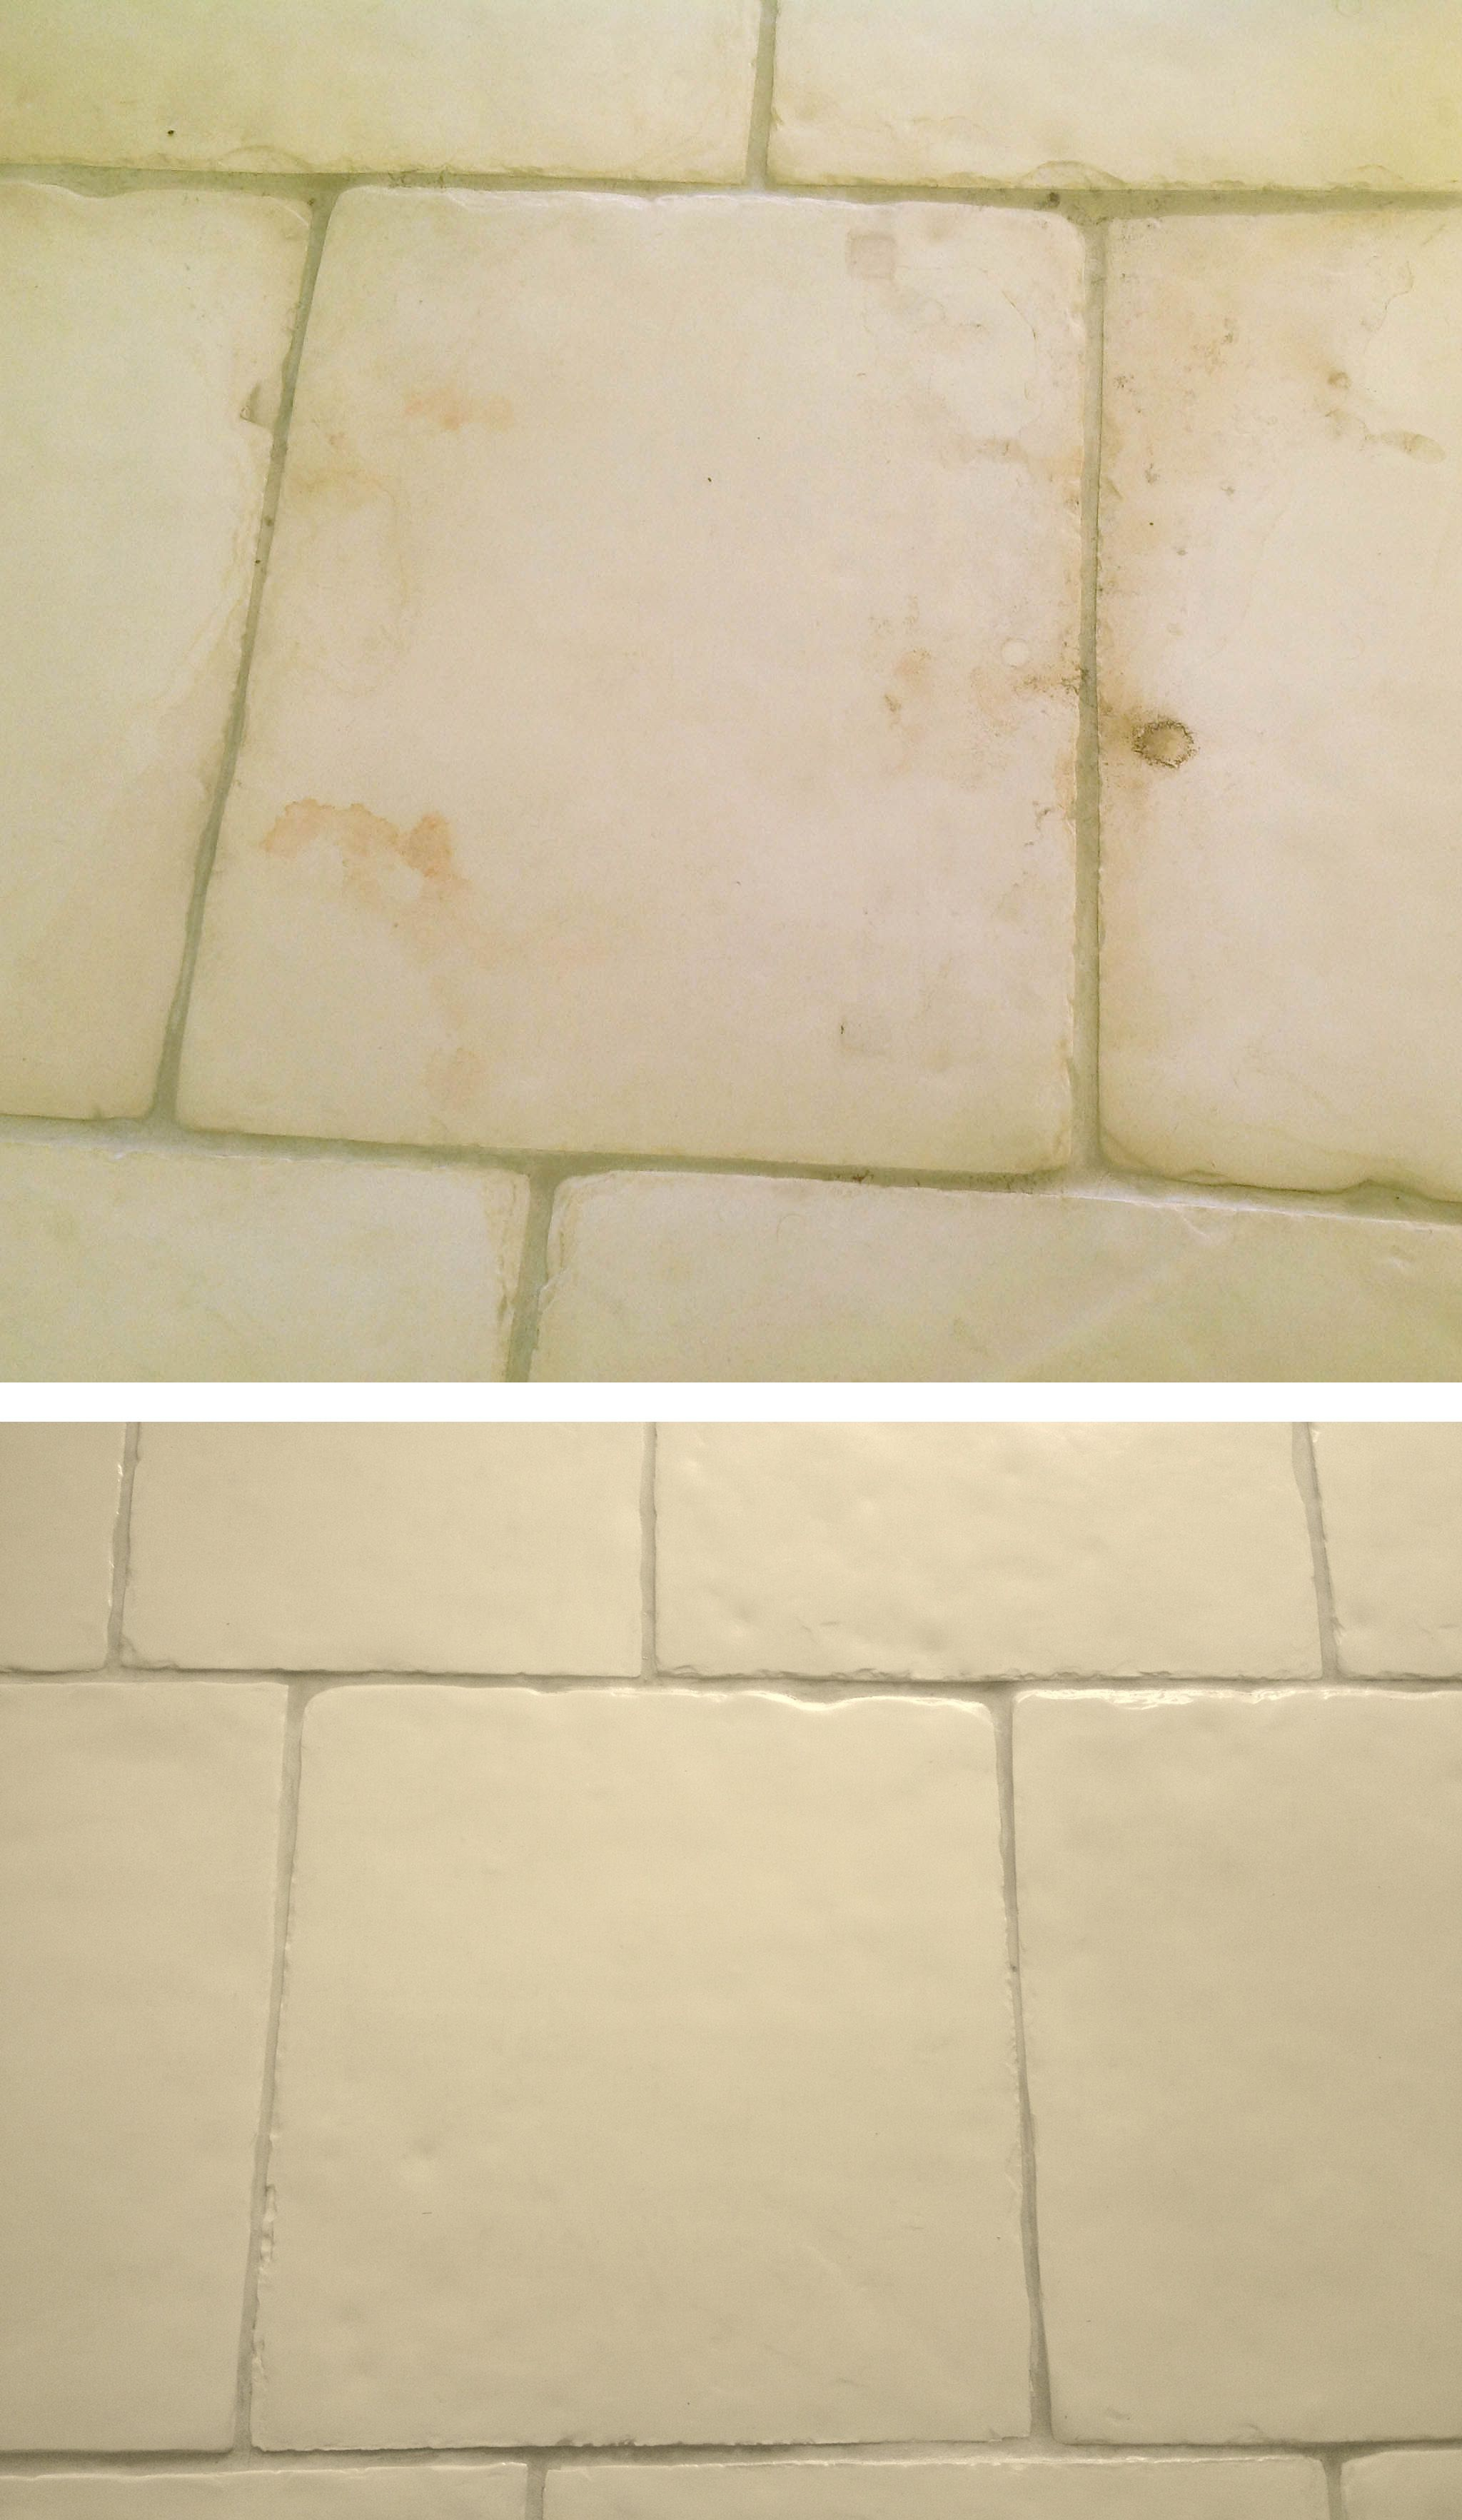 Stone floor tiles damaged by water and rust repaired by plastic